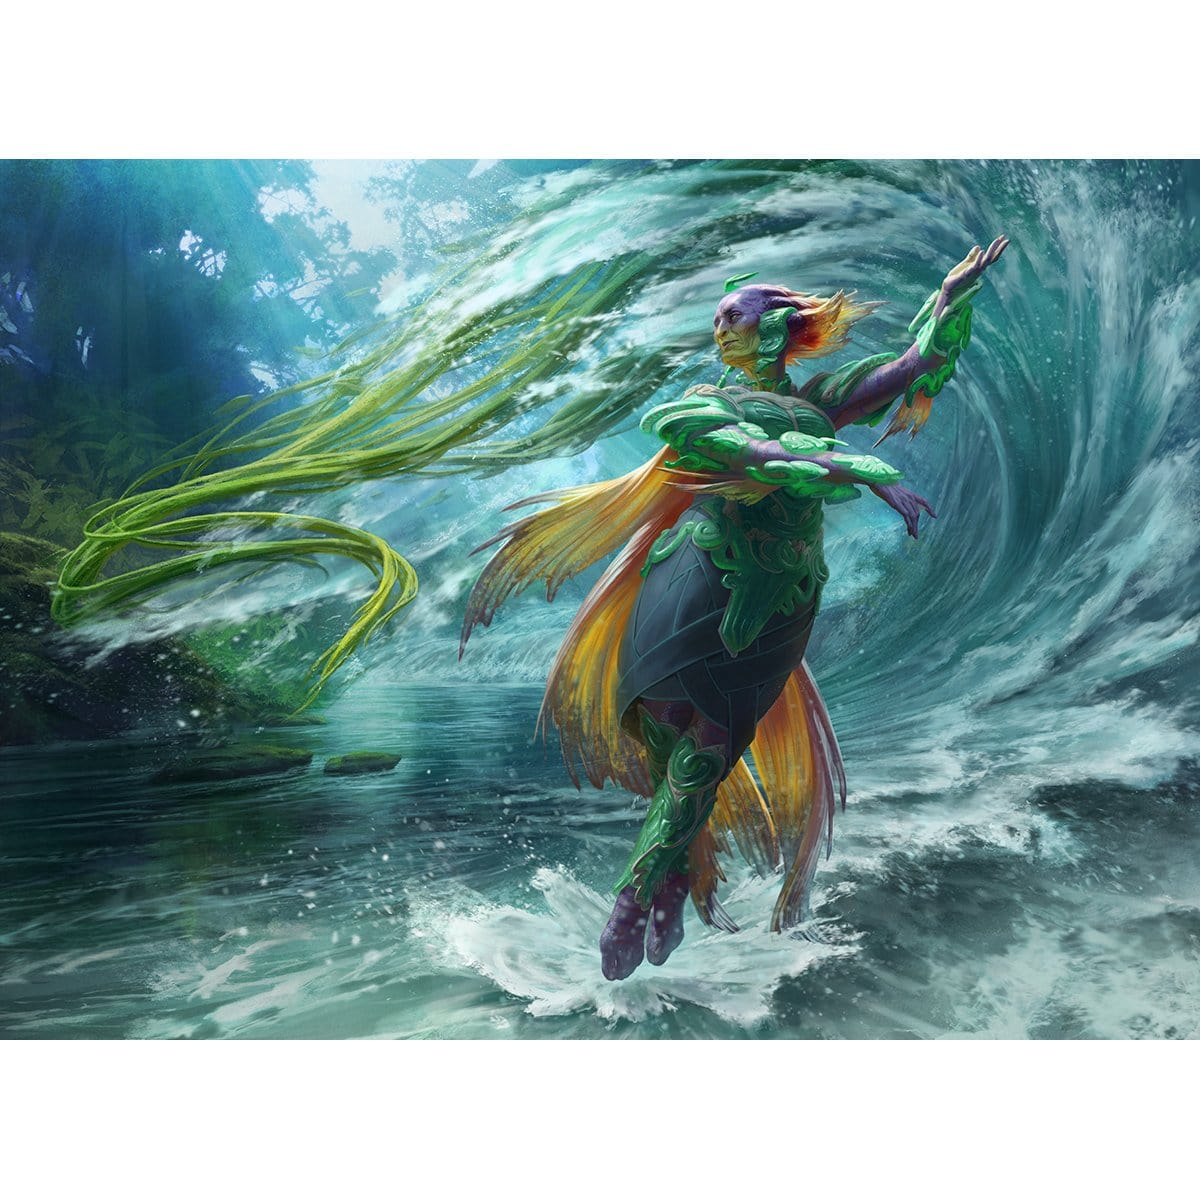 Tishana, Voice of Thunder Print - Print - Original Magic Art - Accessories for Magic the Gathering and other card games